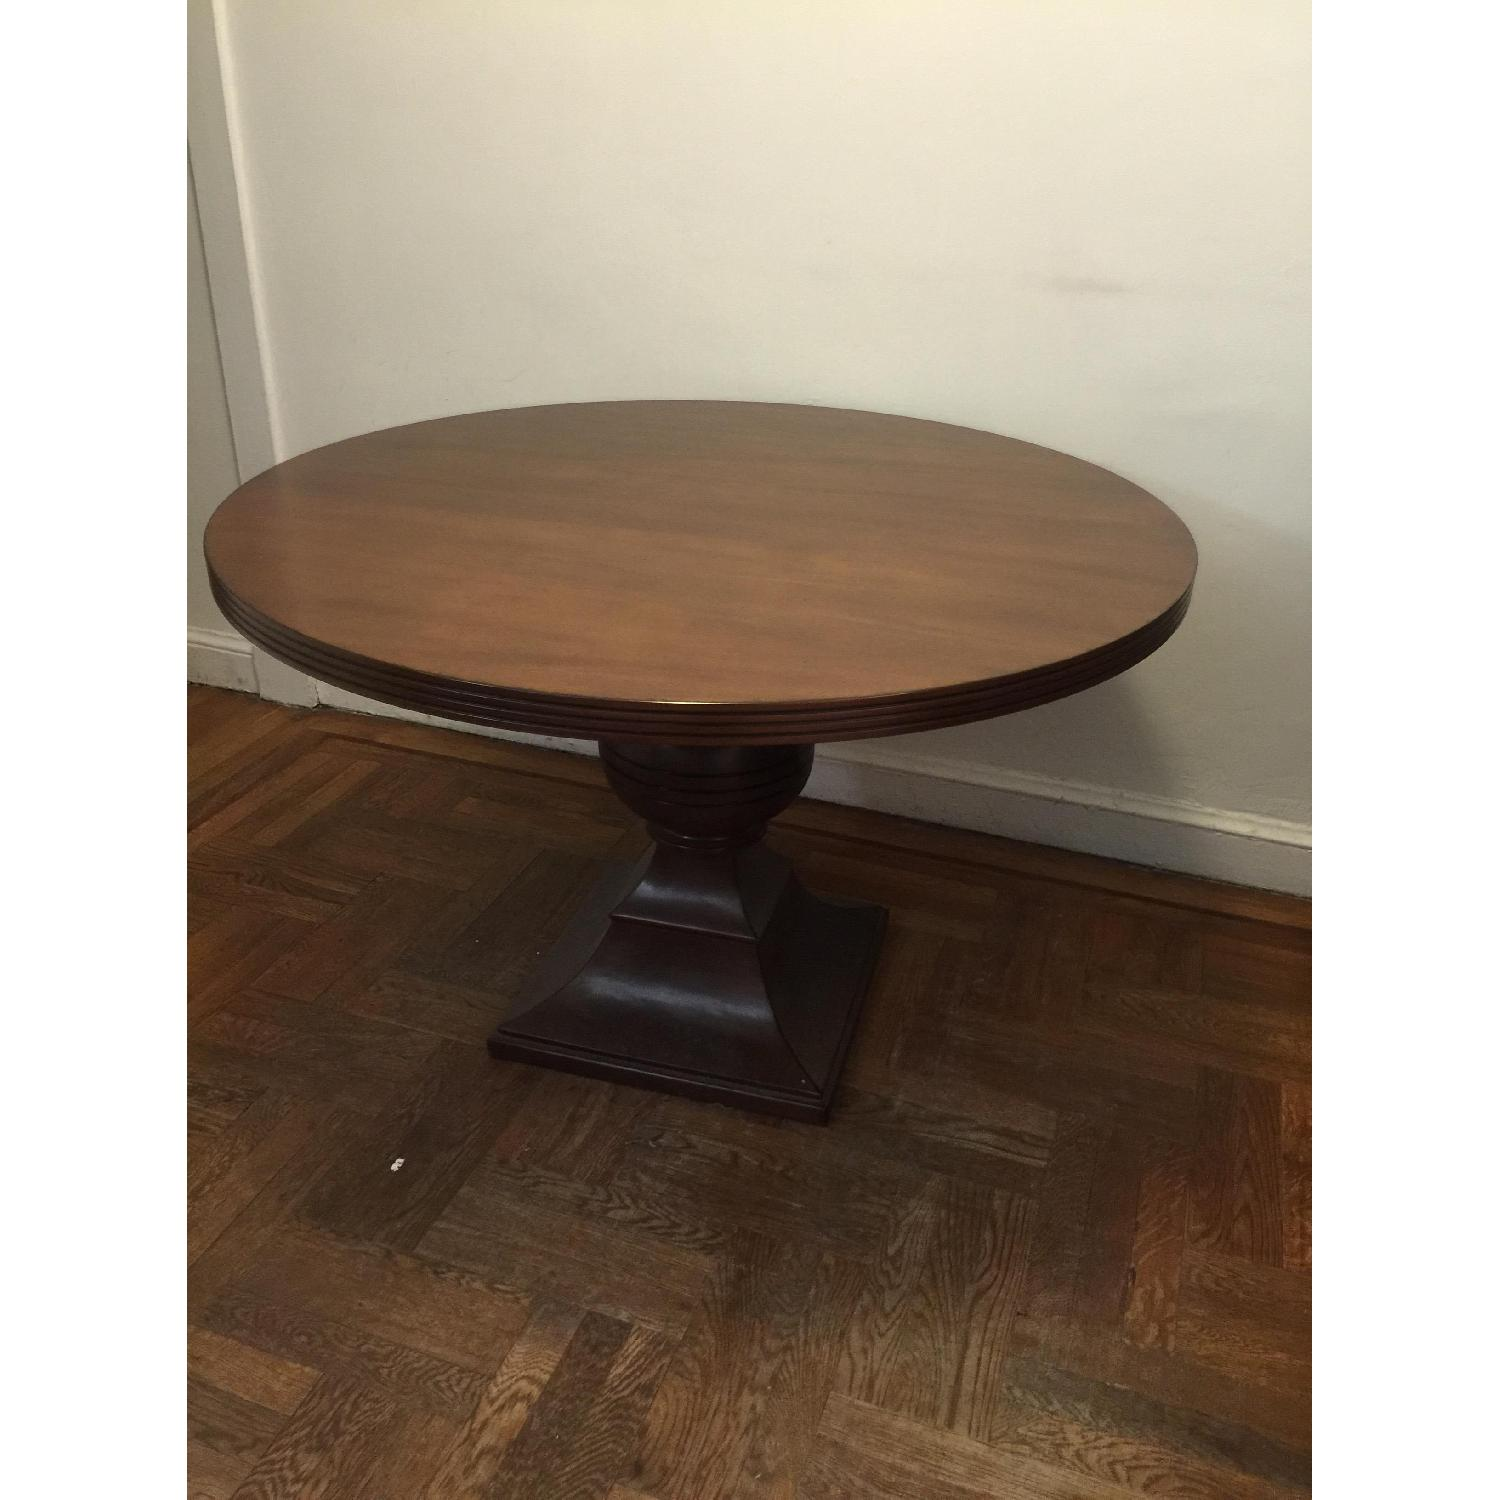 aptdeco used pier 1 dining room table and chairs for aptdeco used pier 1 dining room table and chairs for